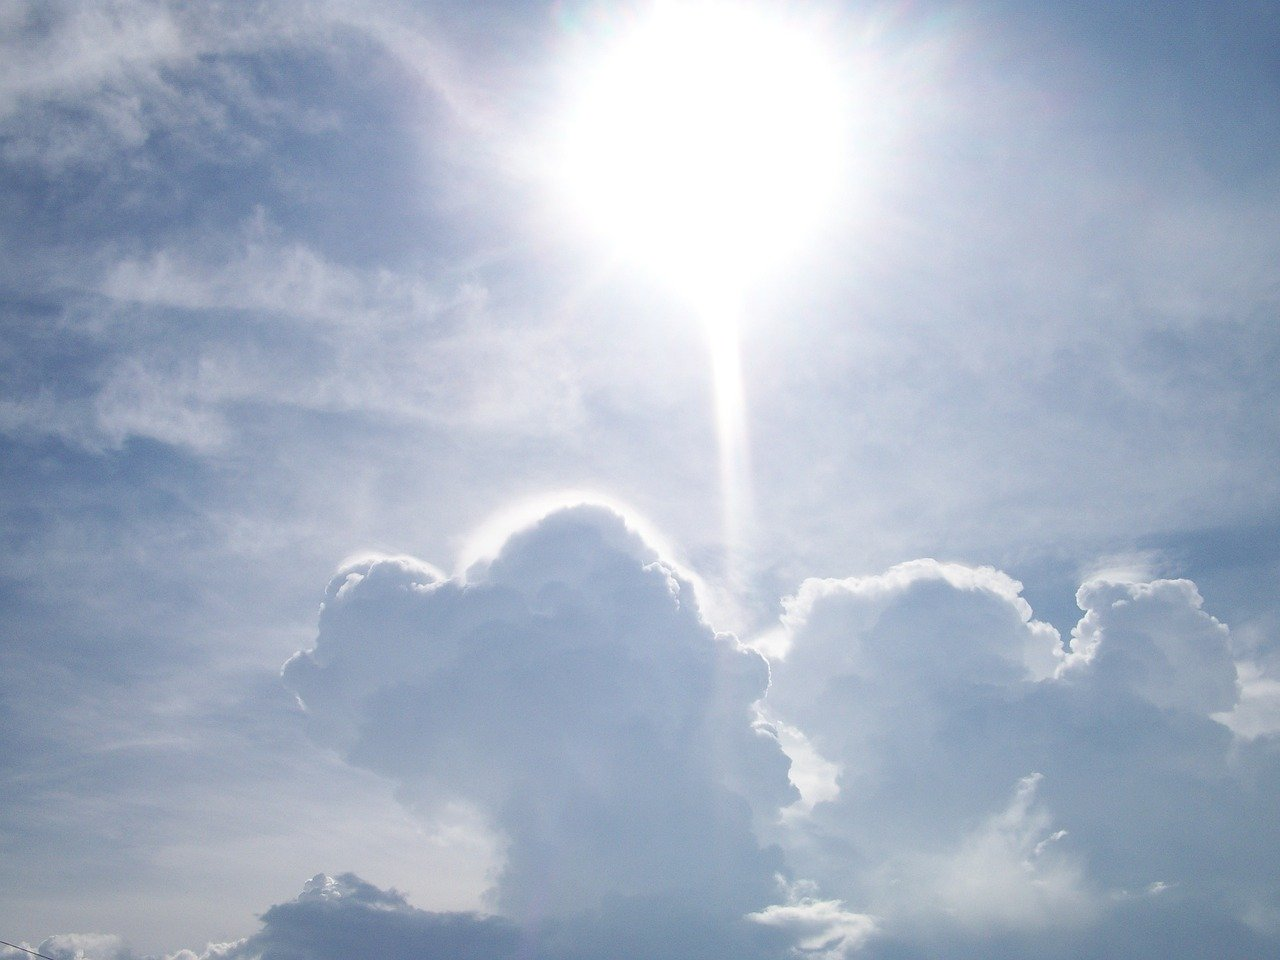 Light-Cloudy-Sky-Sun-White-Bright-Cloud.jpg